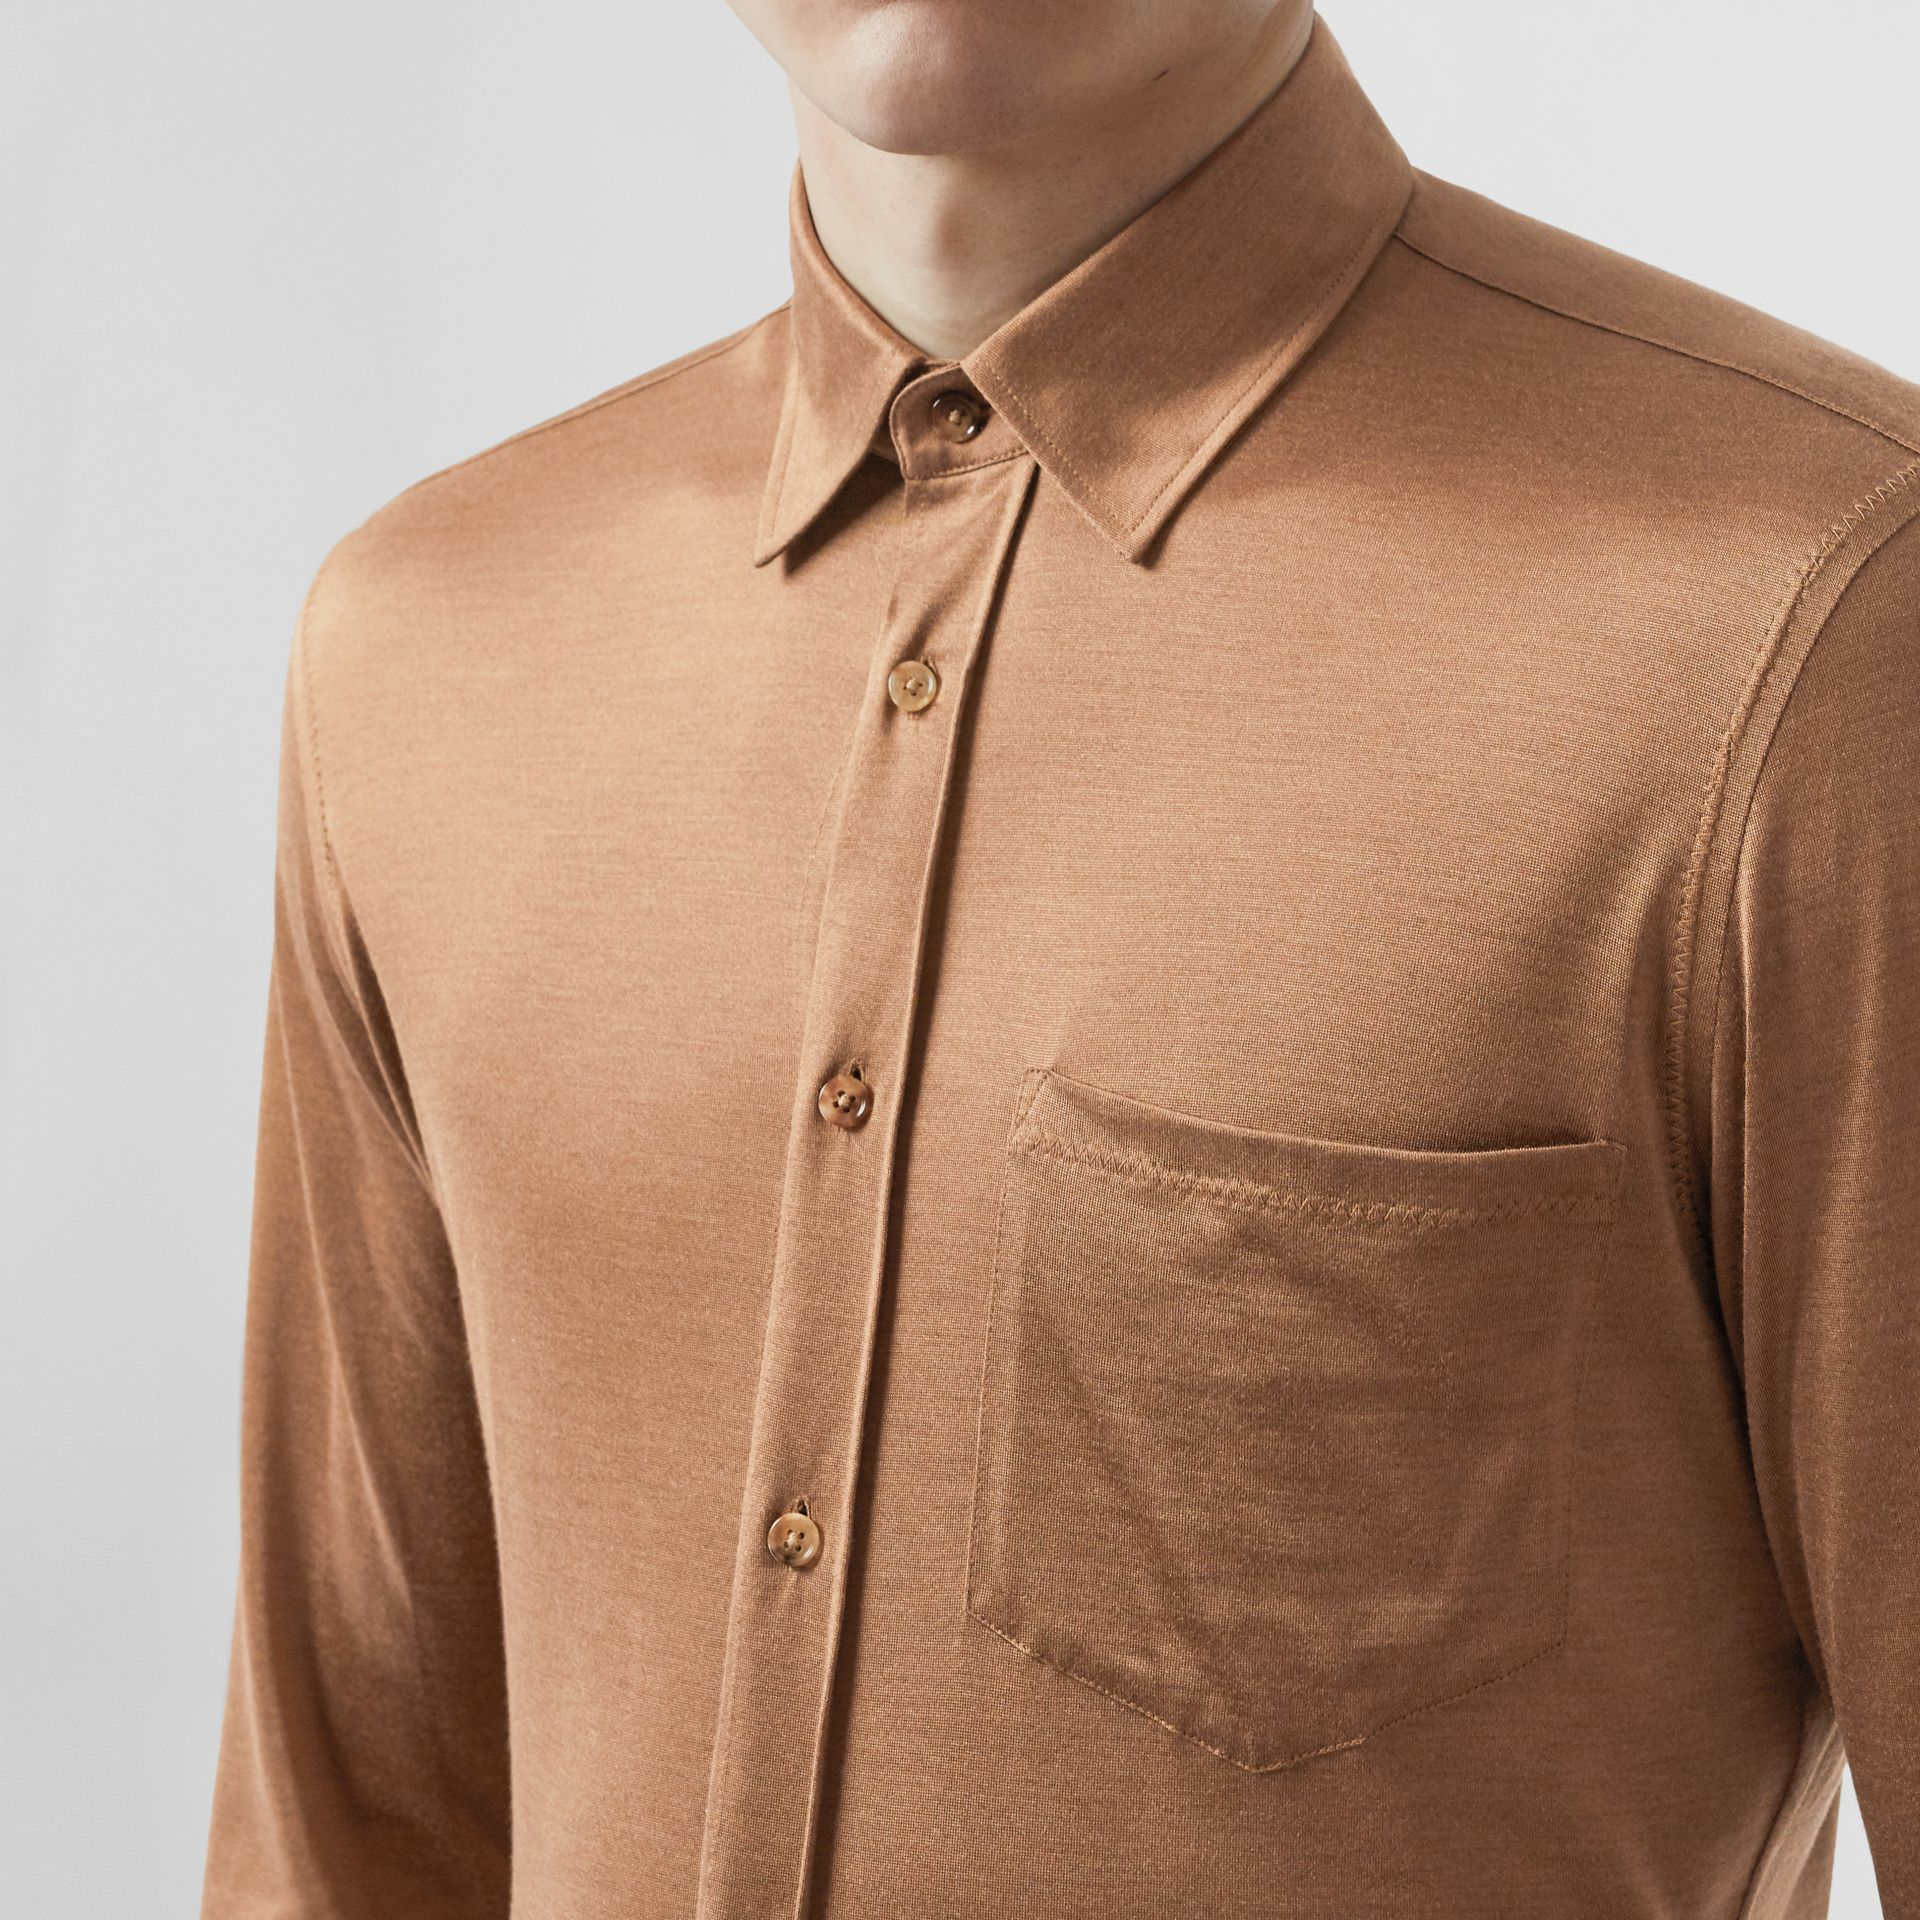 Classic Fit Silk Jersey Shirt in Warm Camel - Men | Burberry - gallery image 1